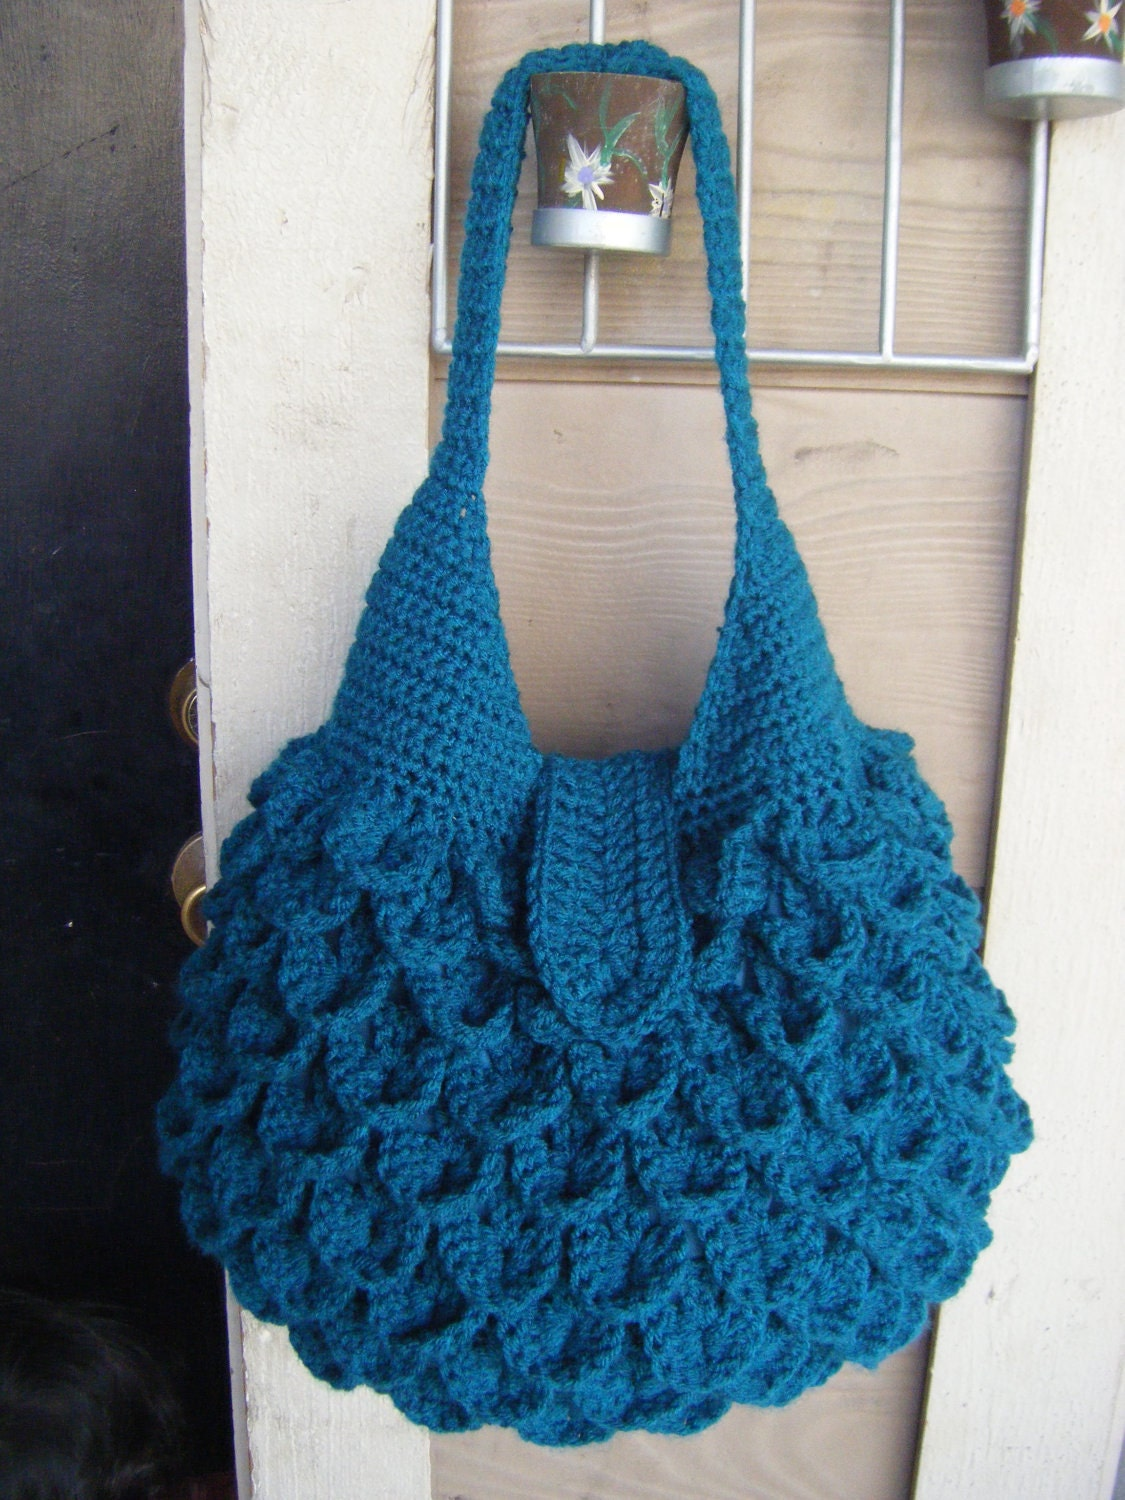 Designer Crochet Handbags : Crochet Crocodile Bag Pattern PERMISSION SELL by NatalieSpot